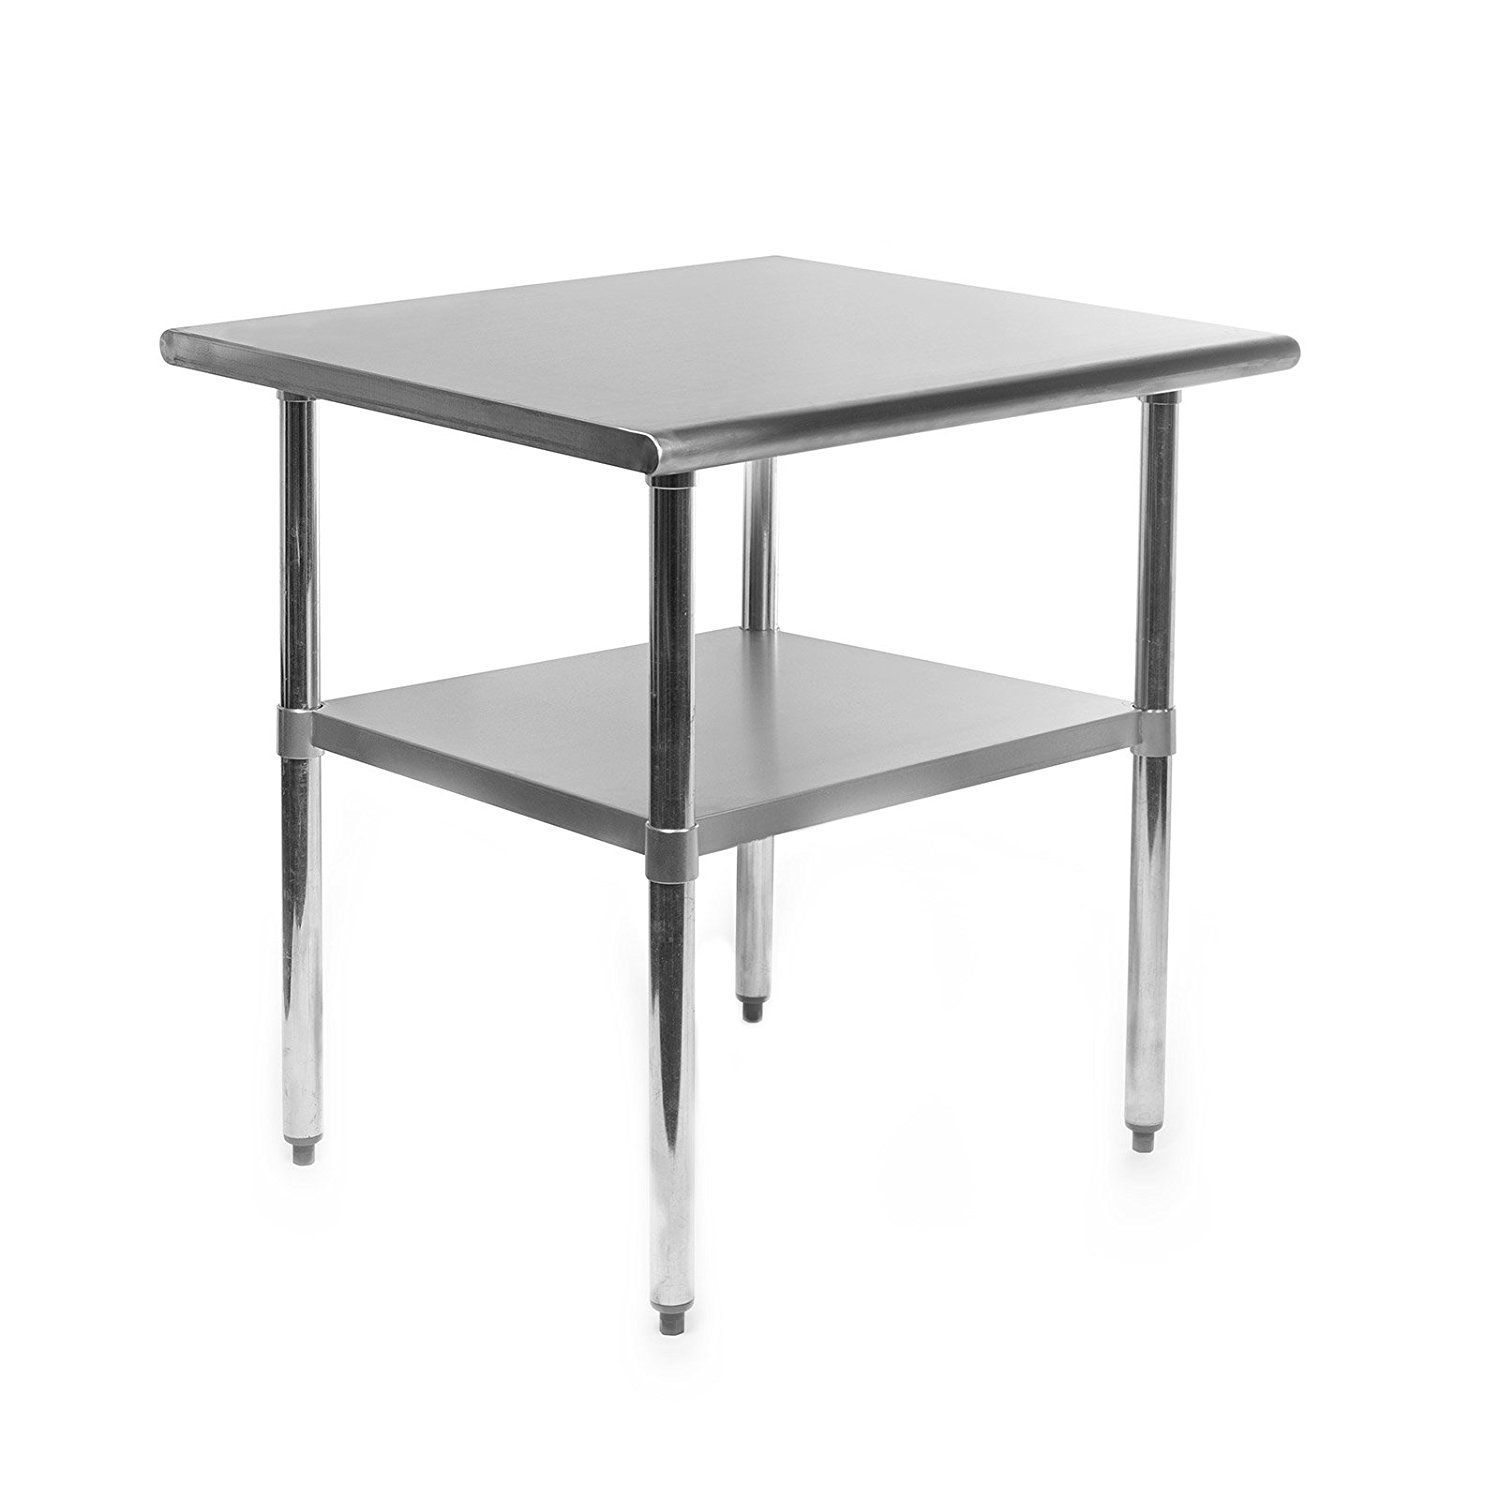 Restaurant Kitchen Work Tables kitchen: durasteel height work table stainless steel food prep